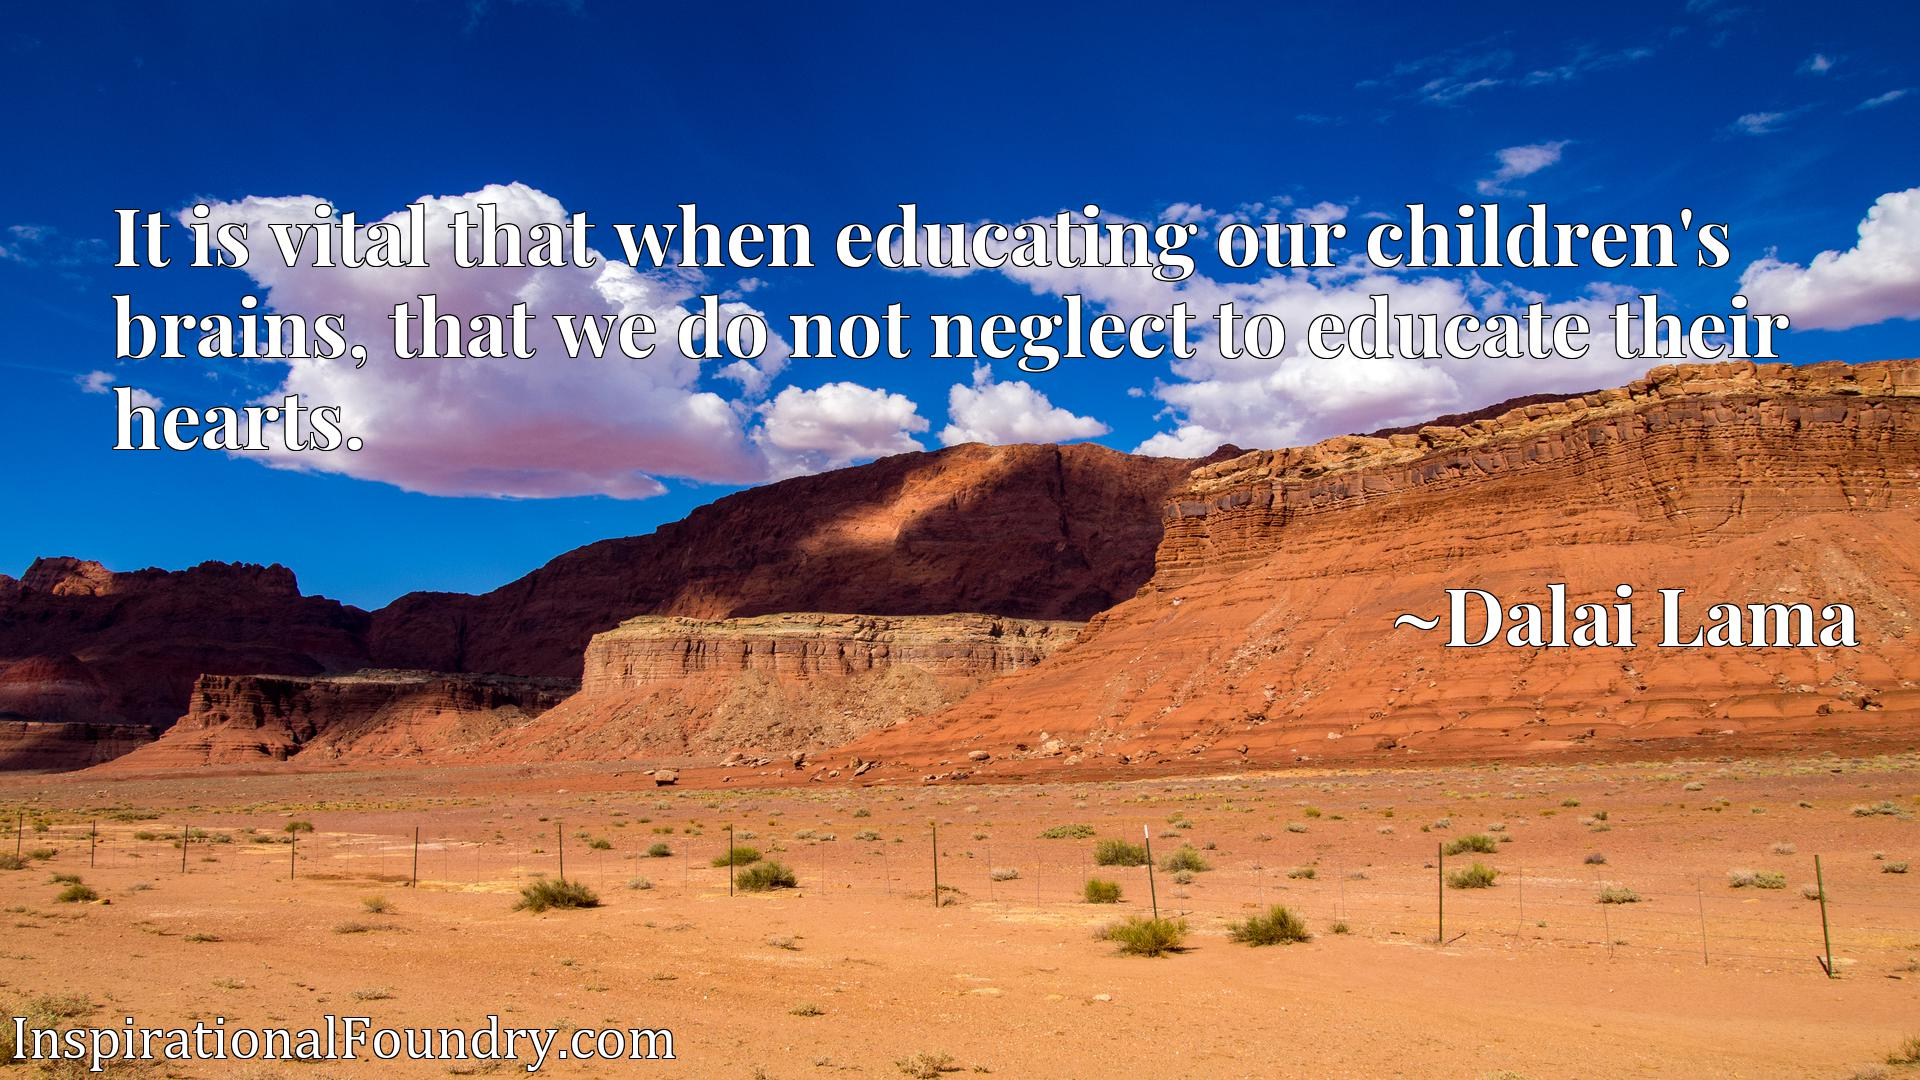 It is vital that when educating our children's brains, that we do not neglect to educate their hearts.